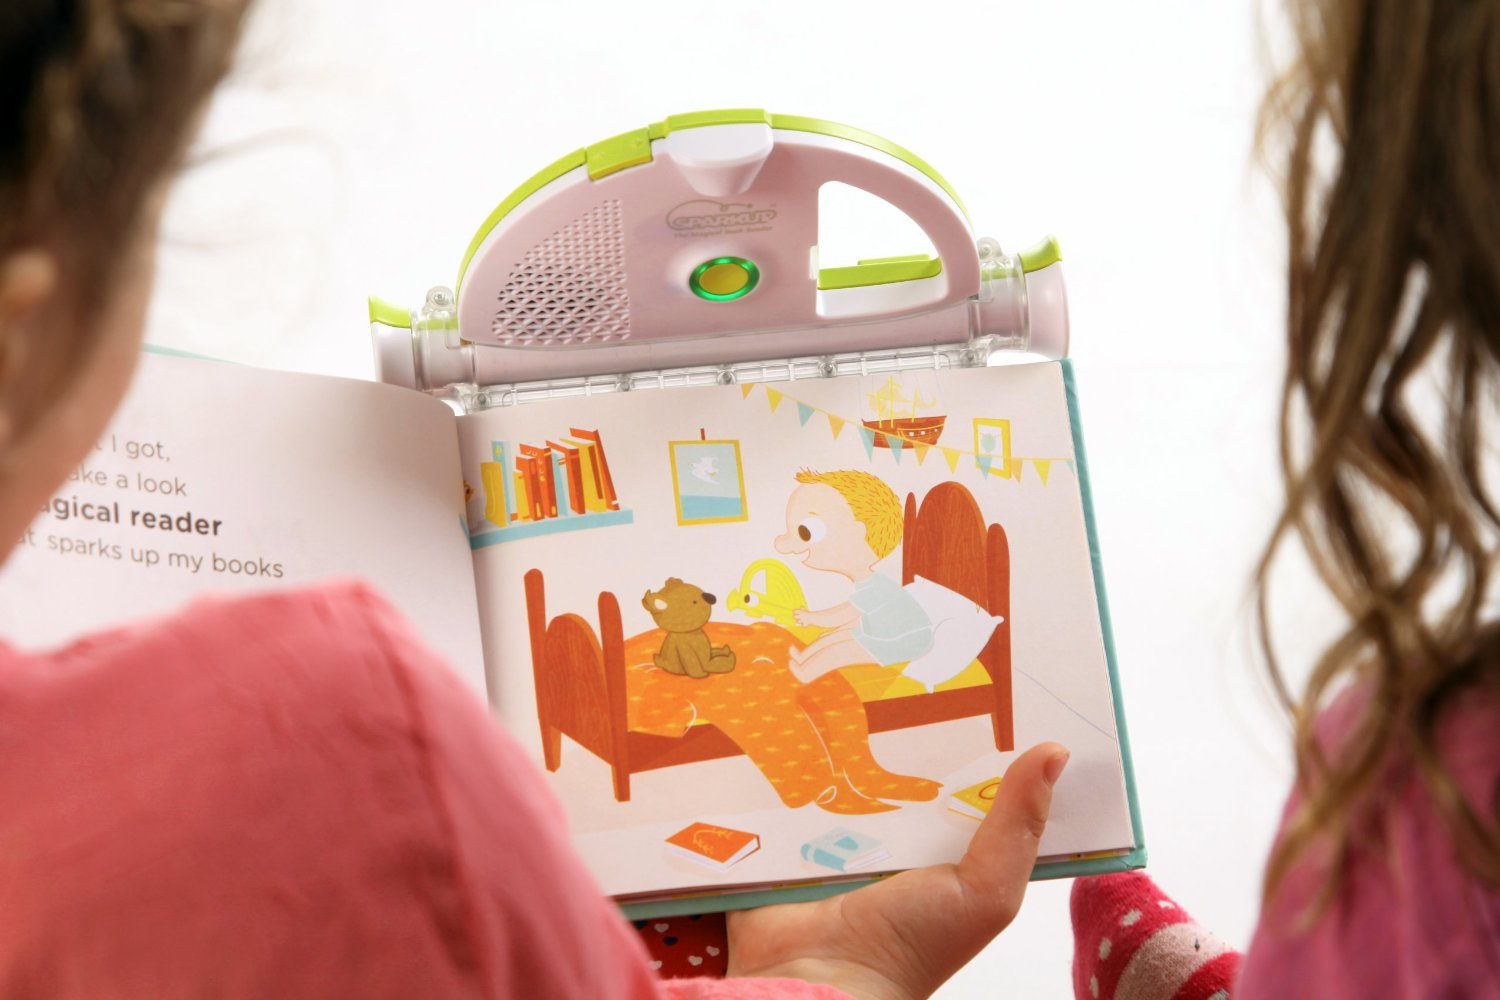 Let's Mom read a book to their kid remotely from afar. Create personalized audio recordings of any illustrated children's book. It attaches to the top of a book and records the user's voice while tracking each page via its built-in camera. ...